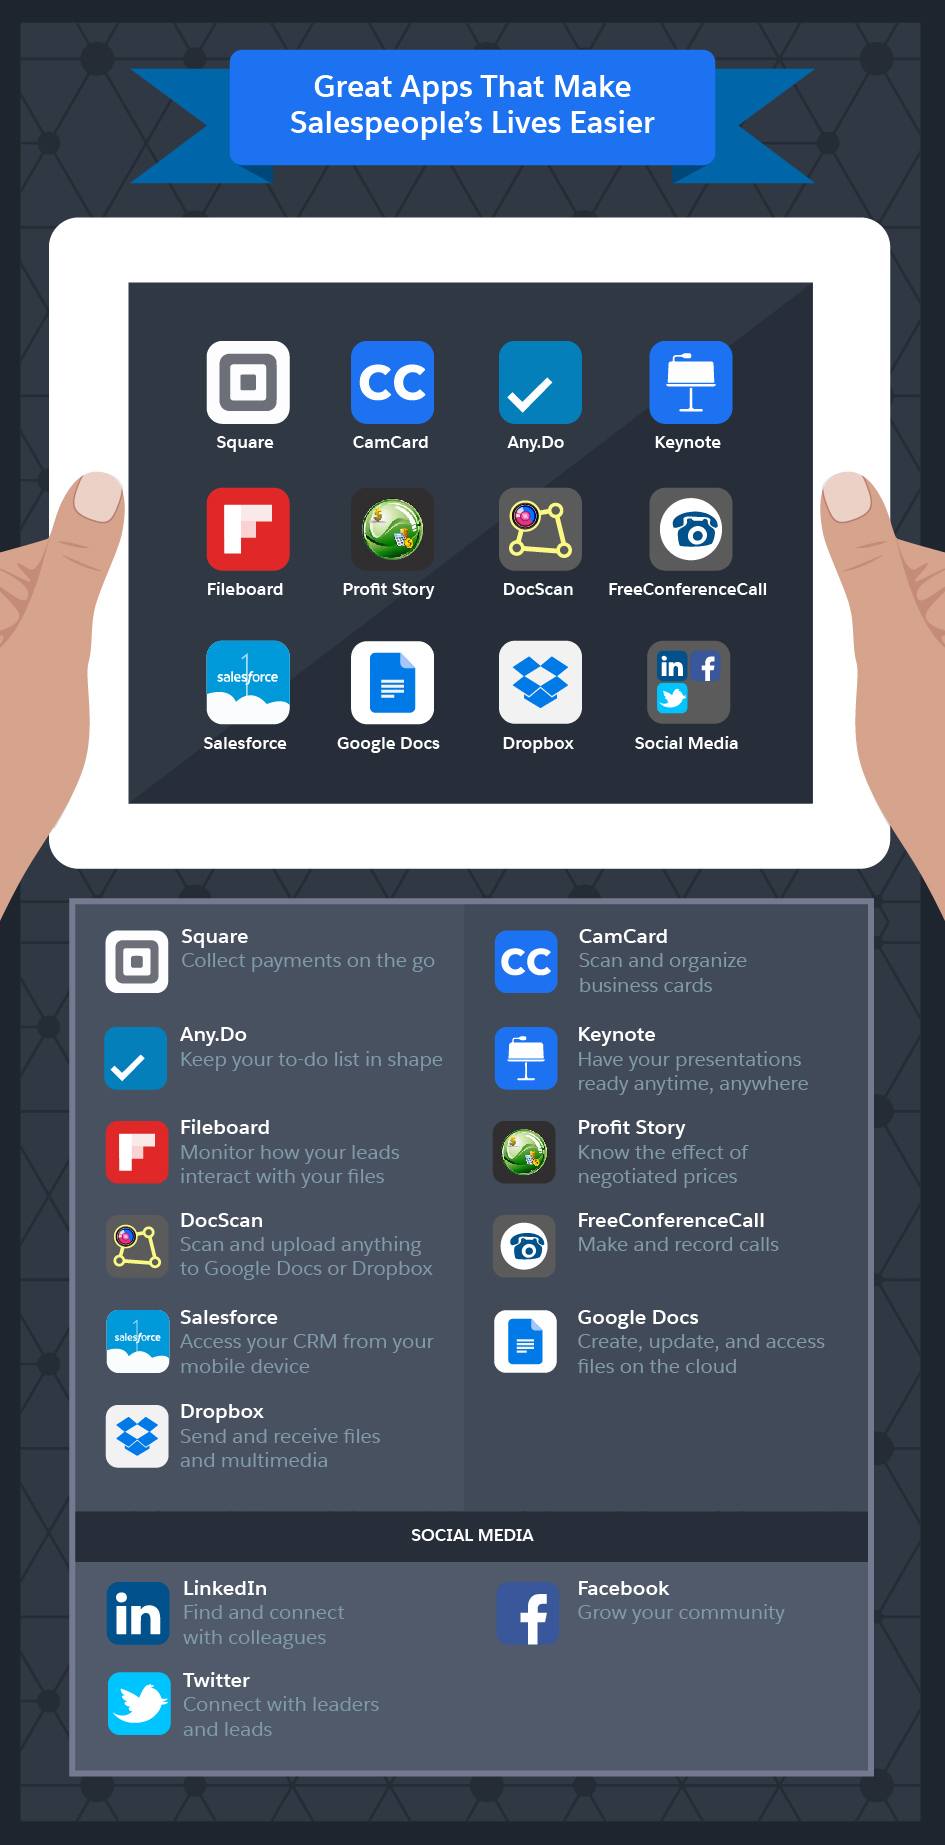 The Most Powerful Apps and Tech for Sales - Salesforce